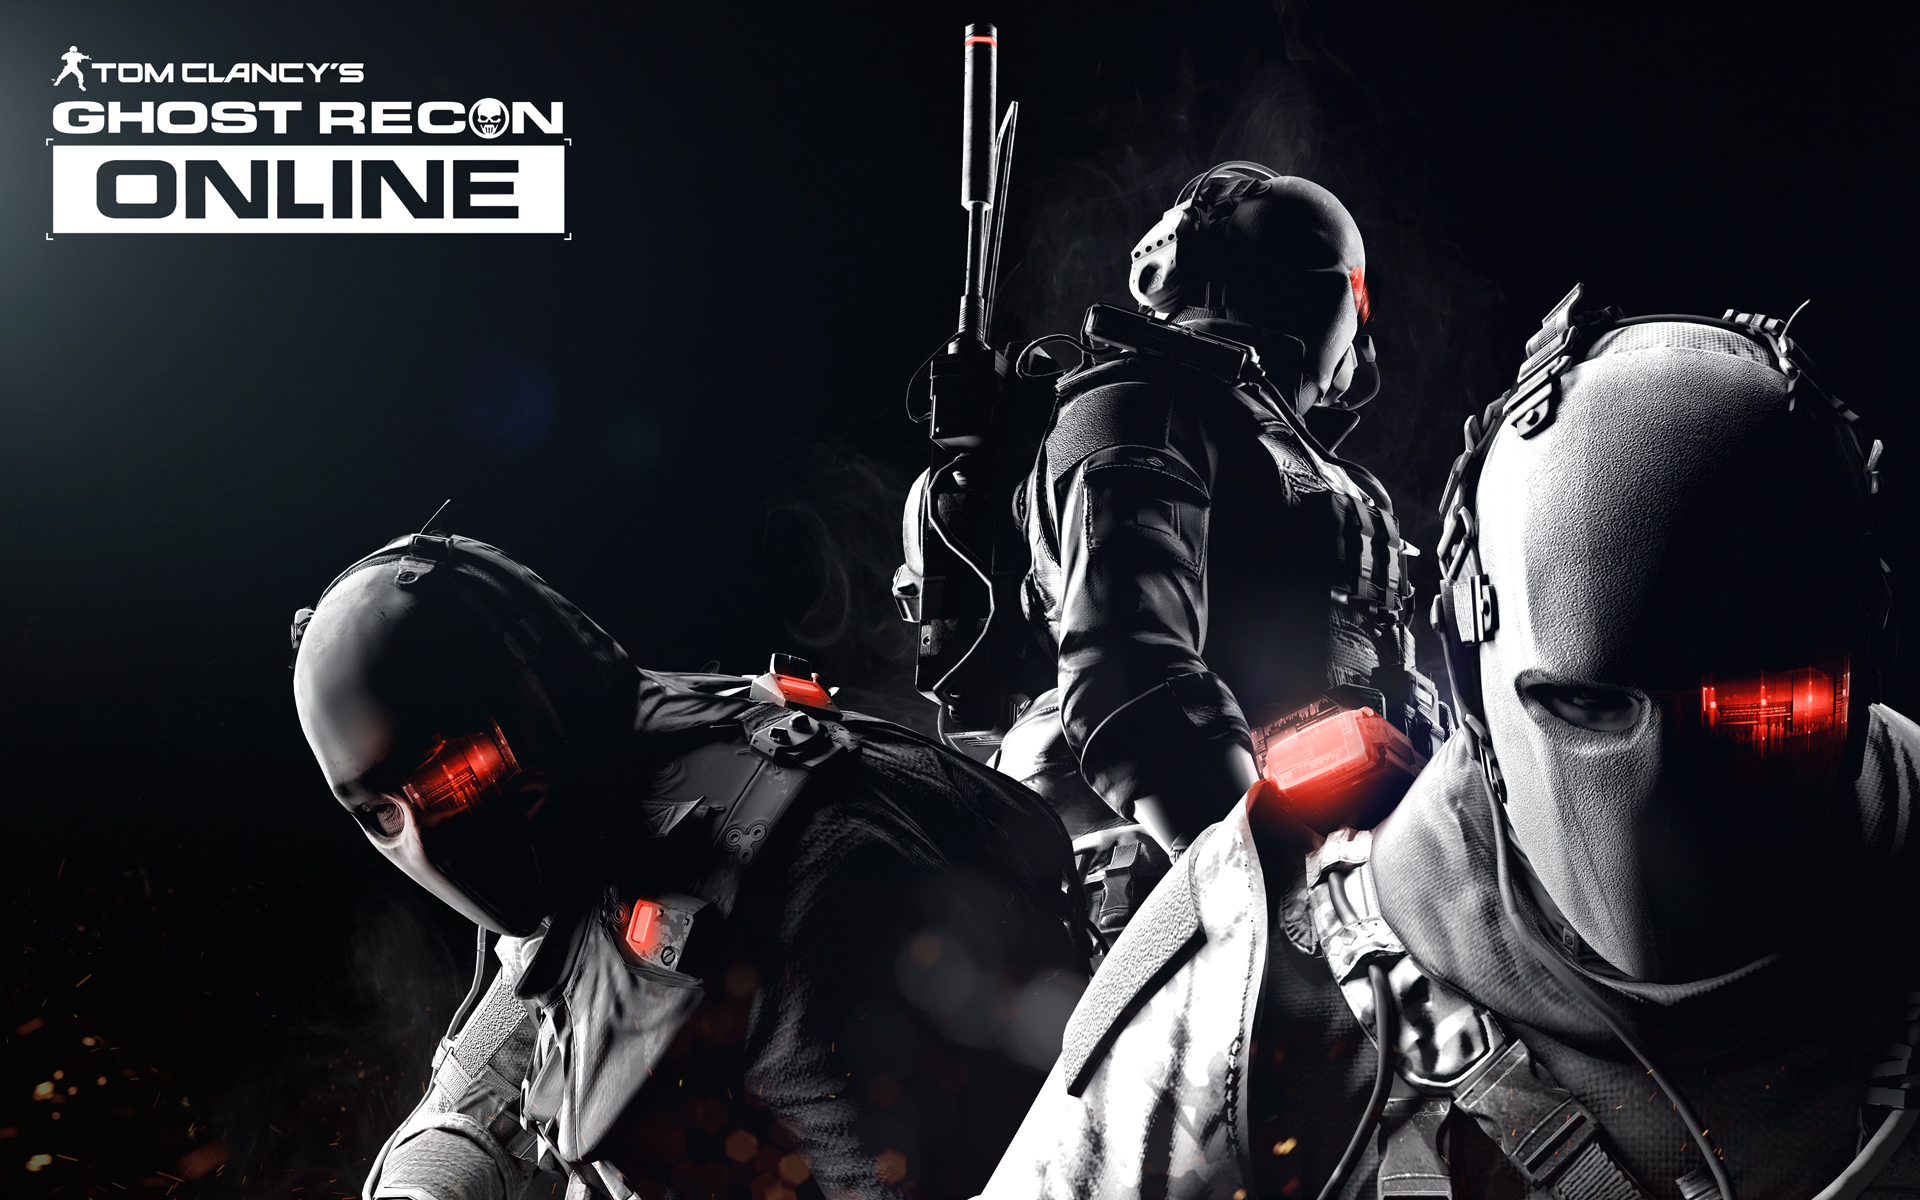 Tom Online Recon Wallpapers Photos And Desktop Backgrounds Up To 8k